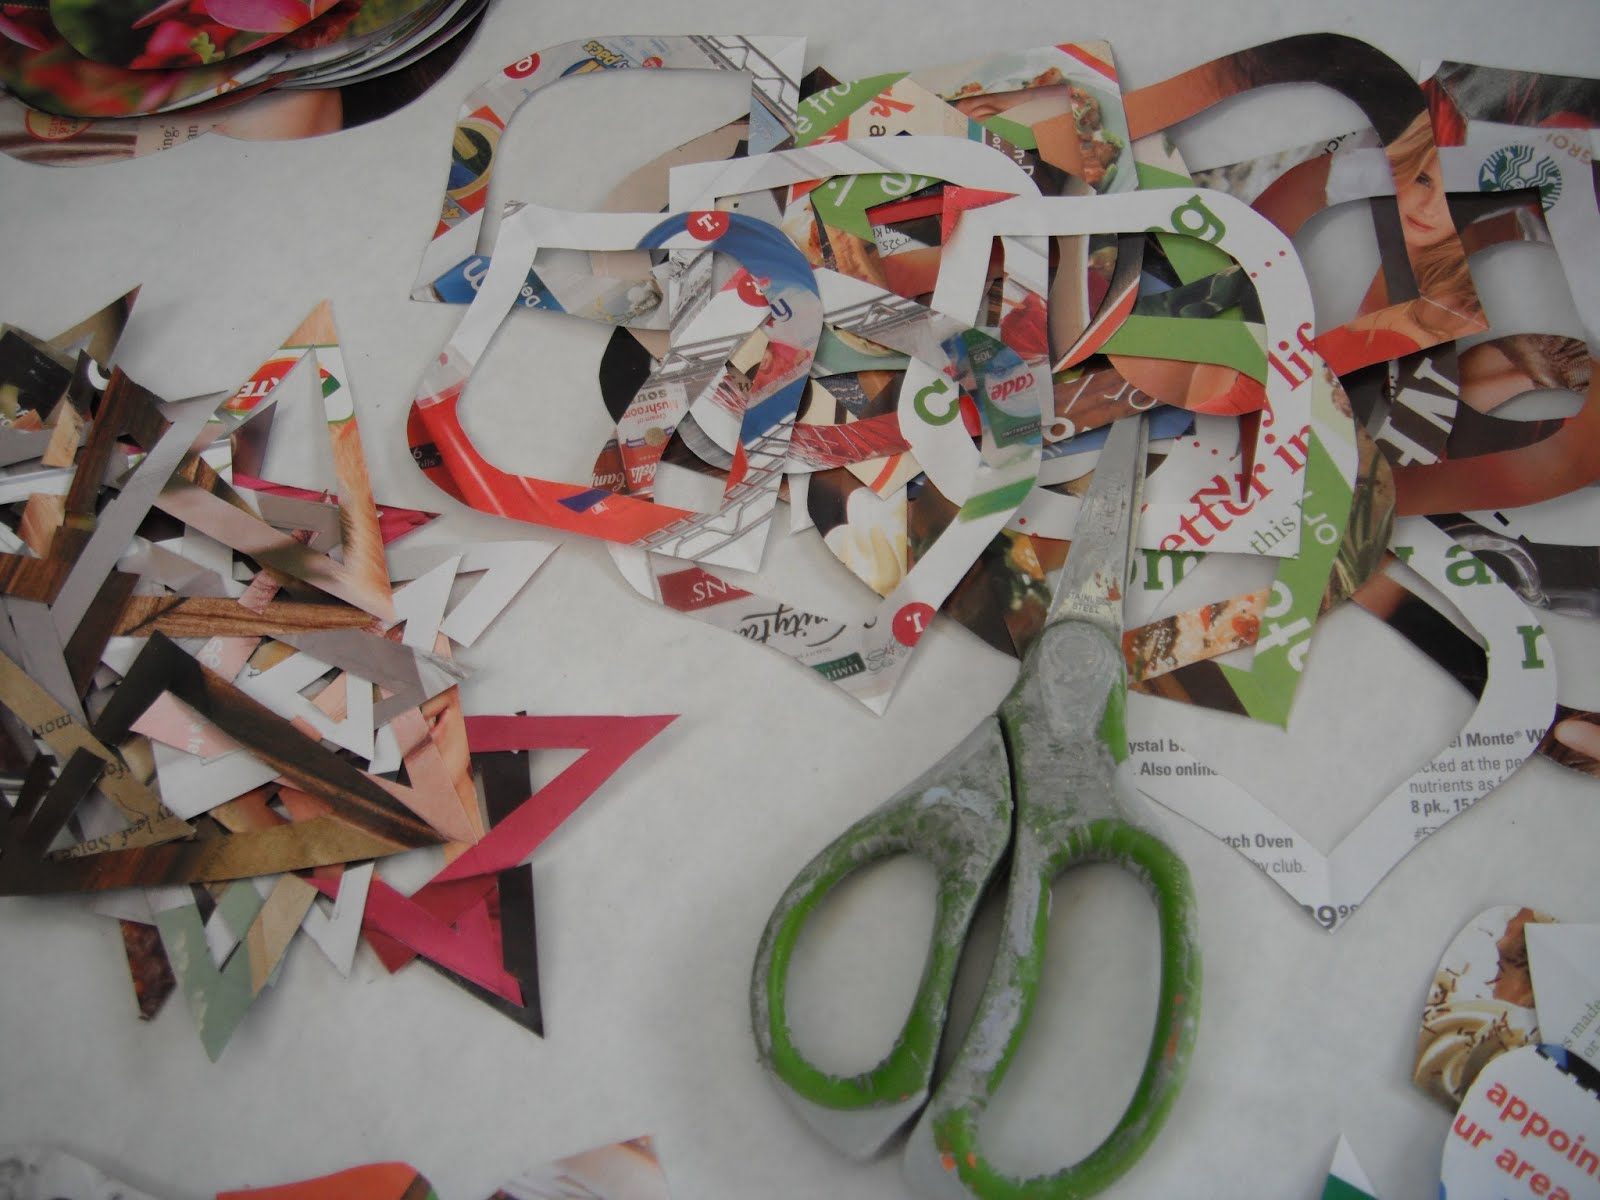 tools of the trade: scissors and magazines